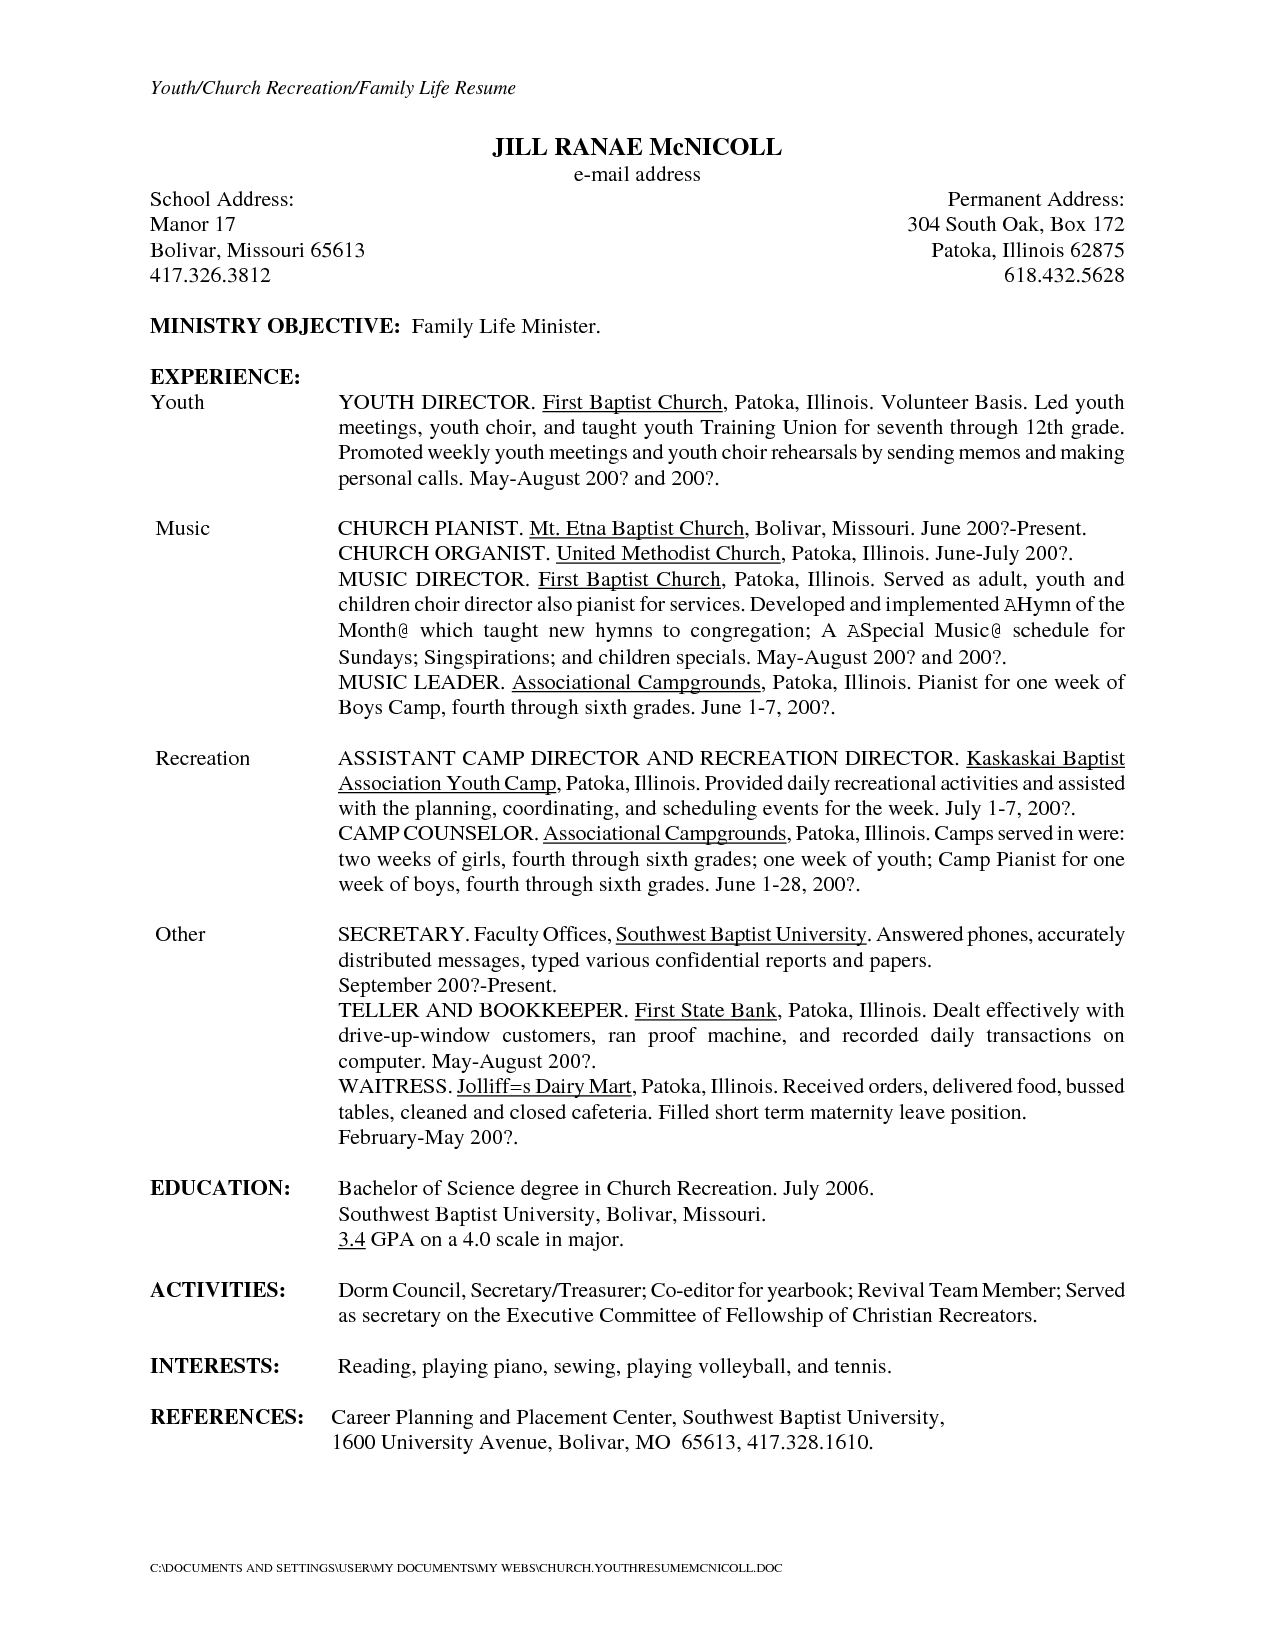 Secretary Cover Letter Template Samples | Letter Template ...